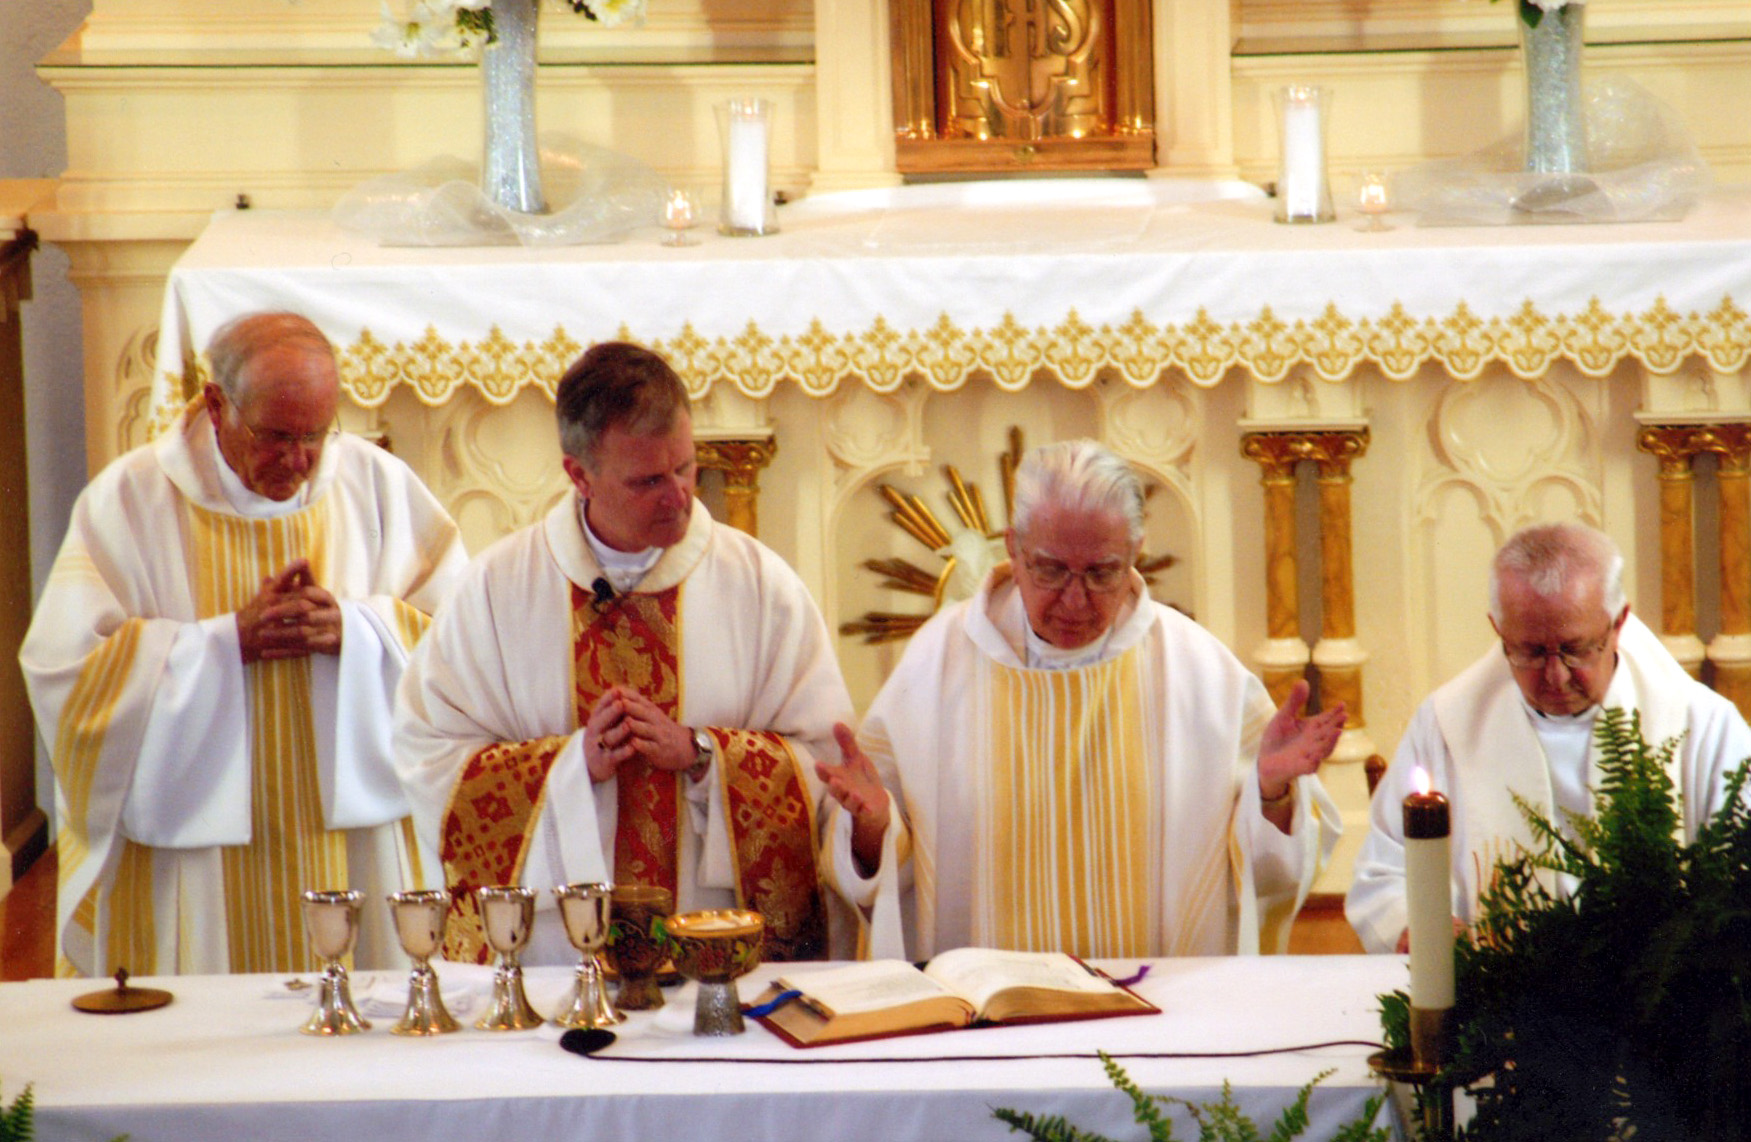 EUCHARISTIC PRAYER--Bp. Emeritus John J. Leibrecht, Bp. James V. Johnston, former St. Mary pastor Fr. Bob Landewe, and St. Mary pastor Fr. Peter Morciniec prayed the Eucharistic Prayer on the altar of St. Mary Catholic Church, Pierce City, May 4. (Submitted photo)